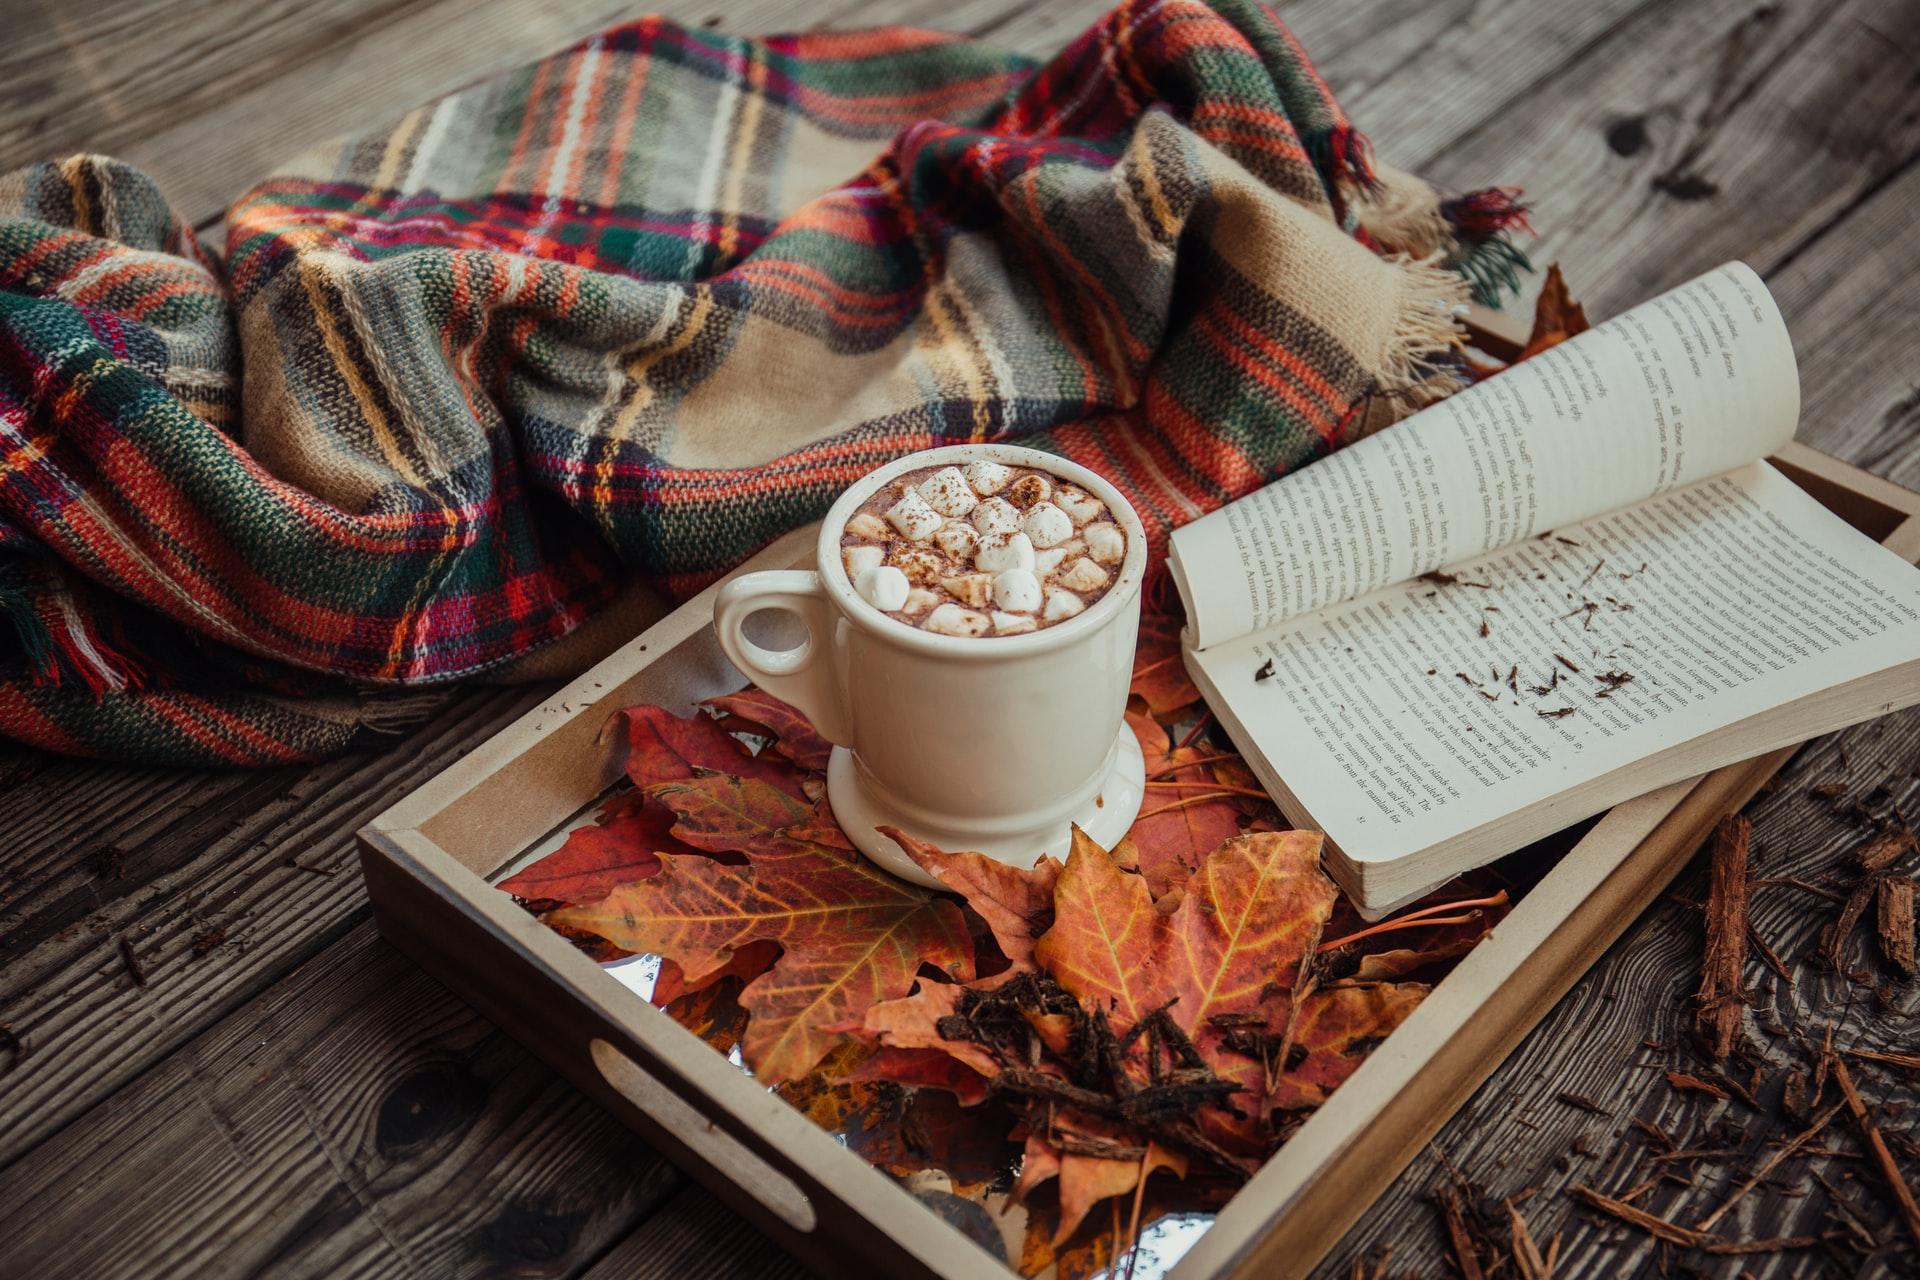 A wooden tray with a mug of hot chocolate, open book and autumn leaves